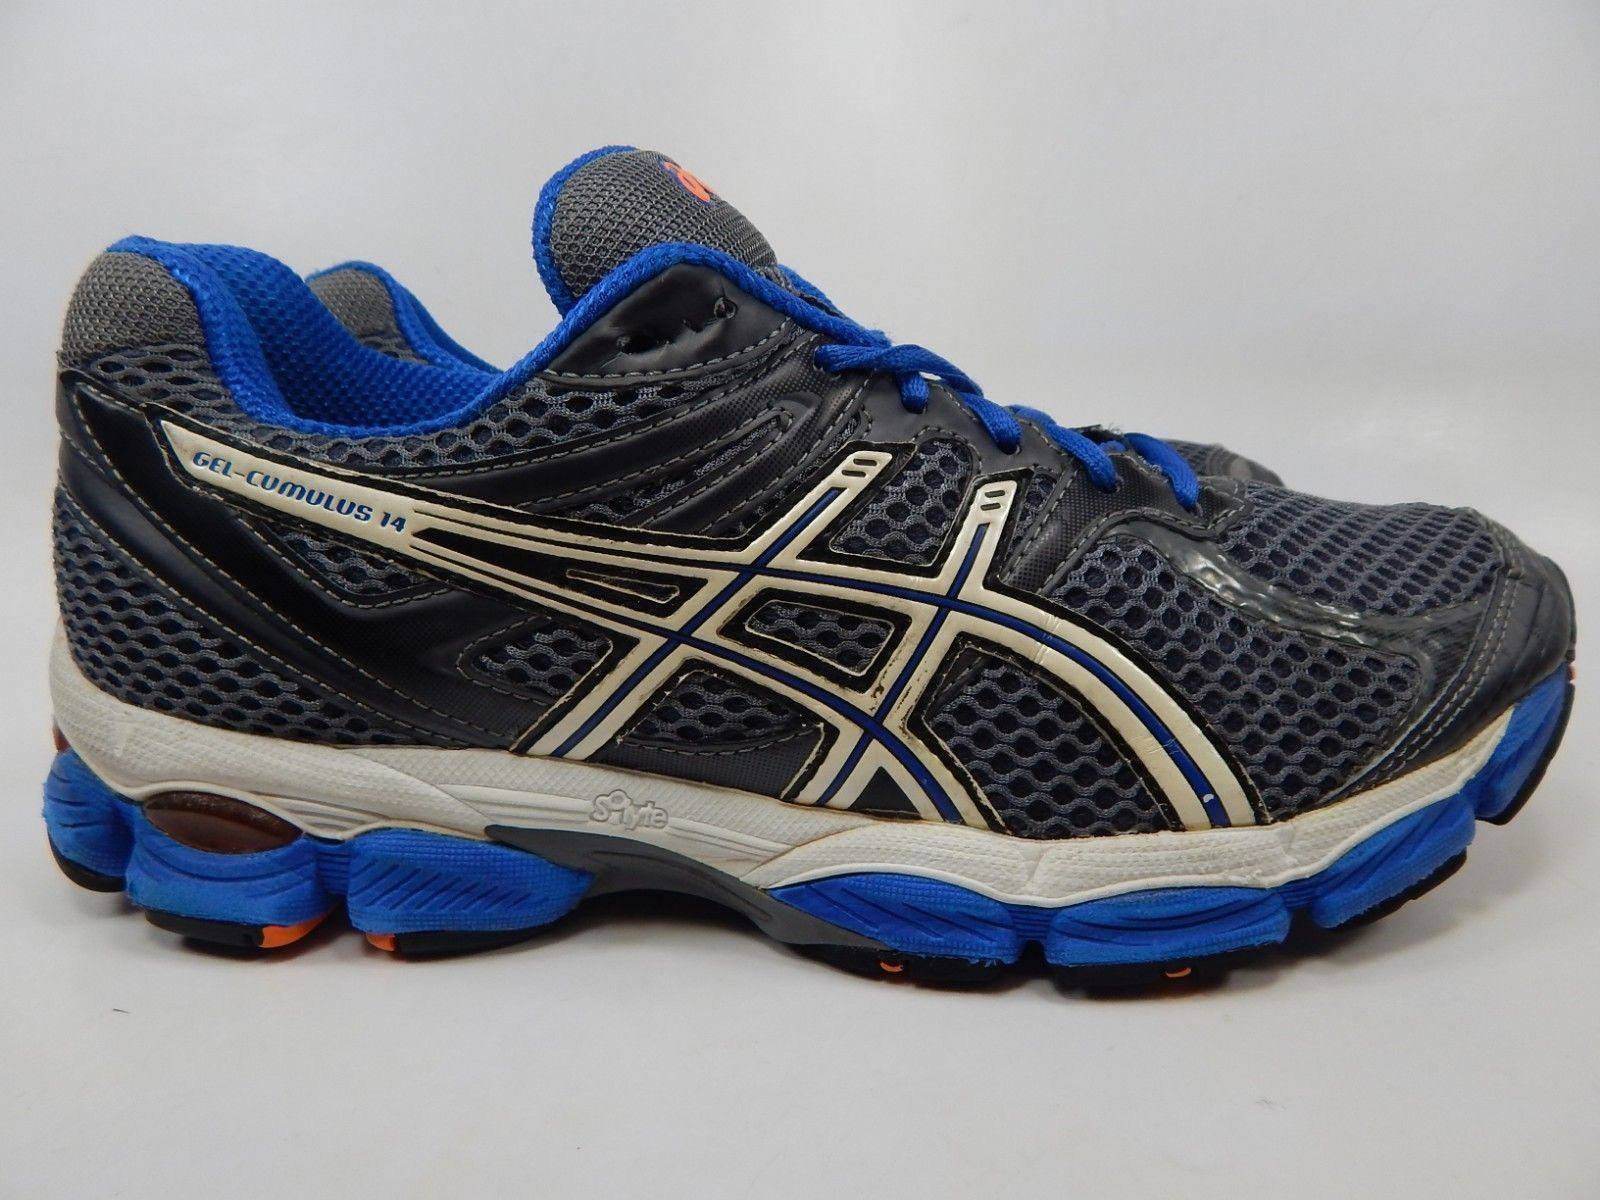 5ab6c72aed69af Asics Gel Cumulus 14 Size US 9.5 M (D) EU 43 and 23 similar items